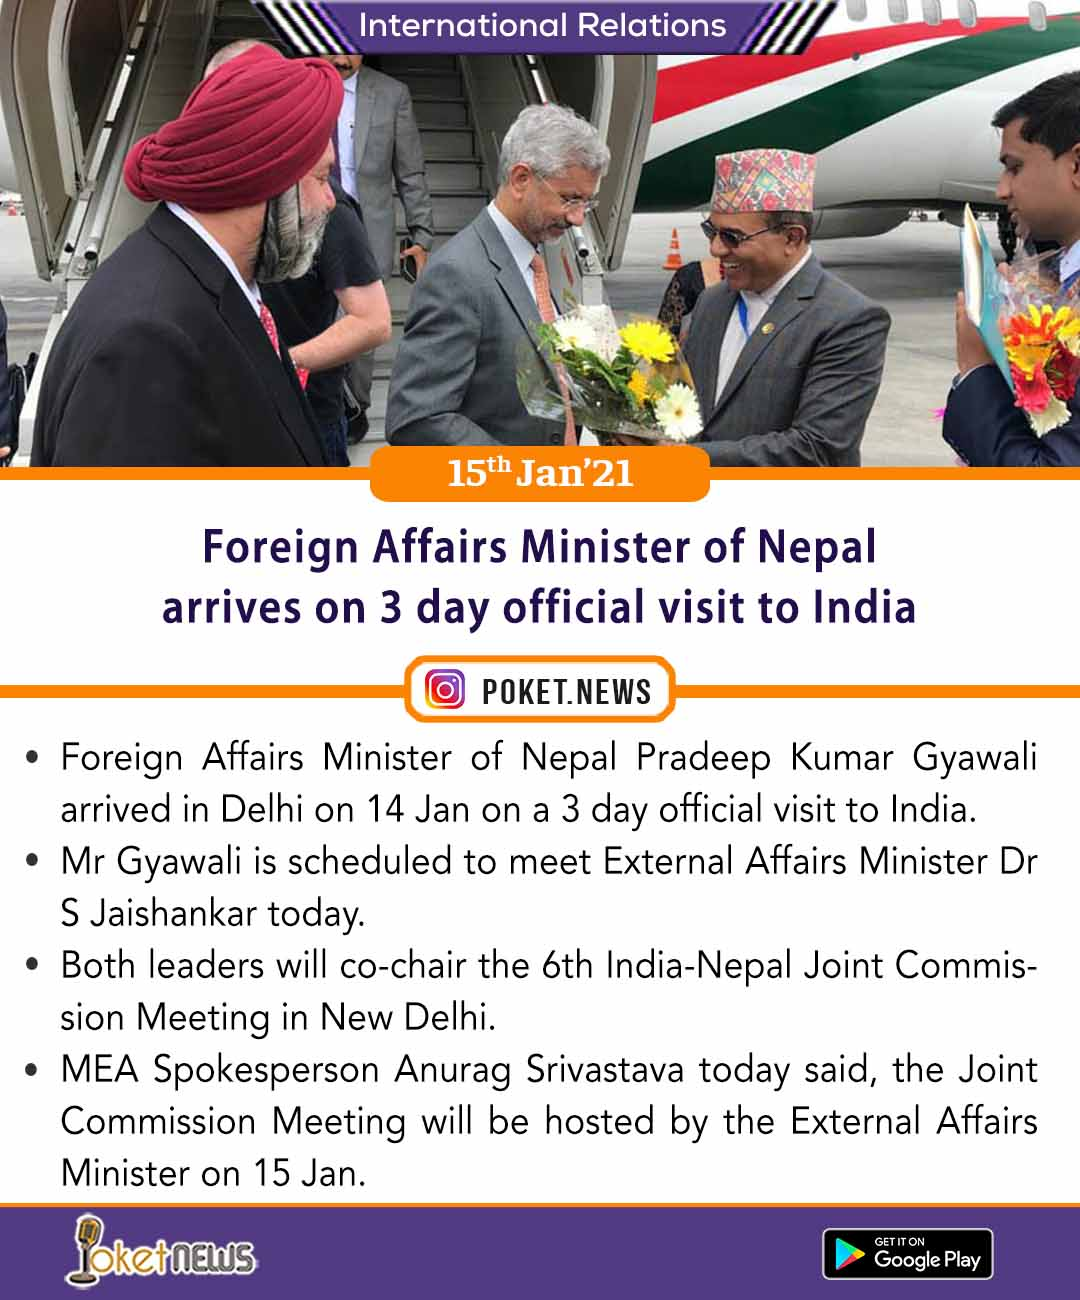 Foreign Affairs Minister of Nepal arrives on 3 day official visit to India